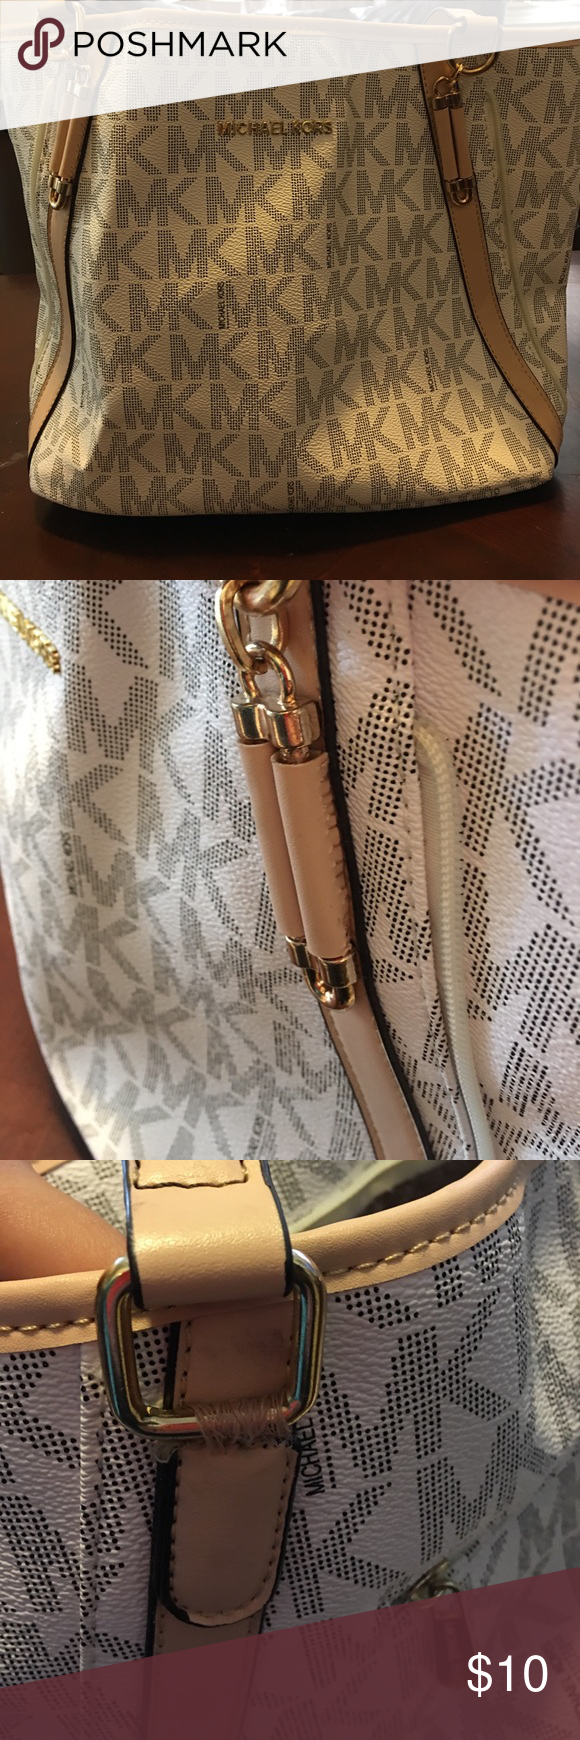 Knock Off Michael Kors Bag With Images Michael Kors Bag Bags Michael Kors